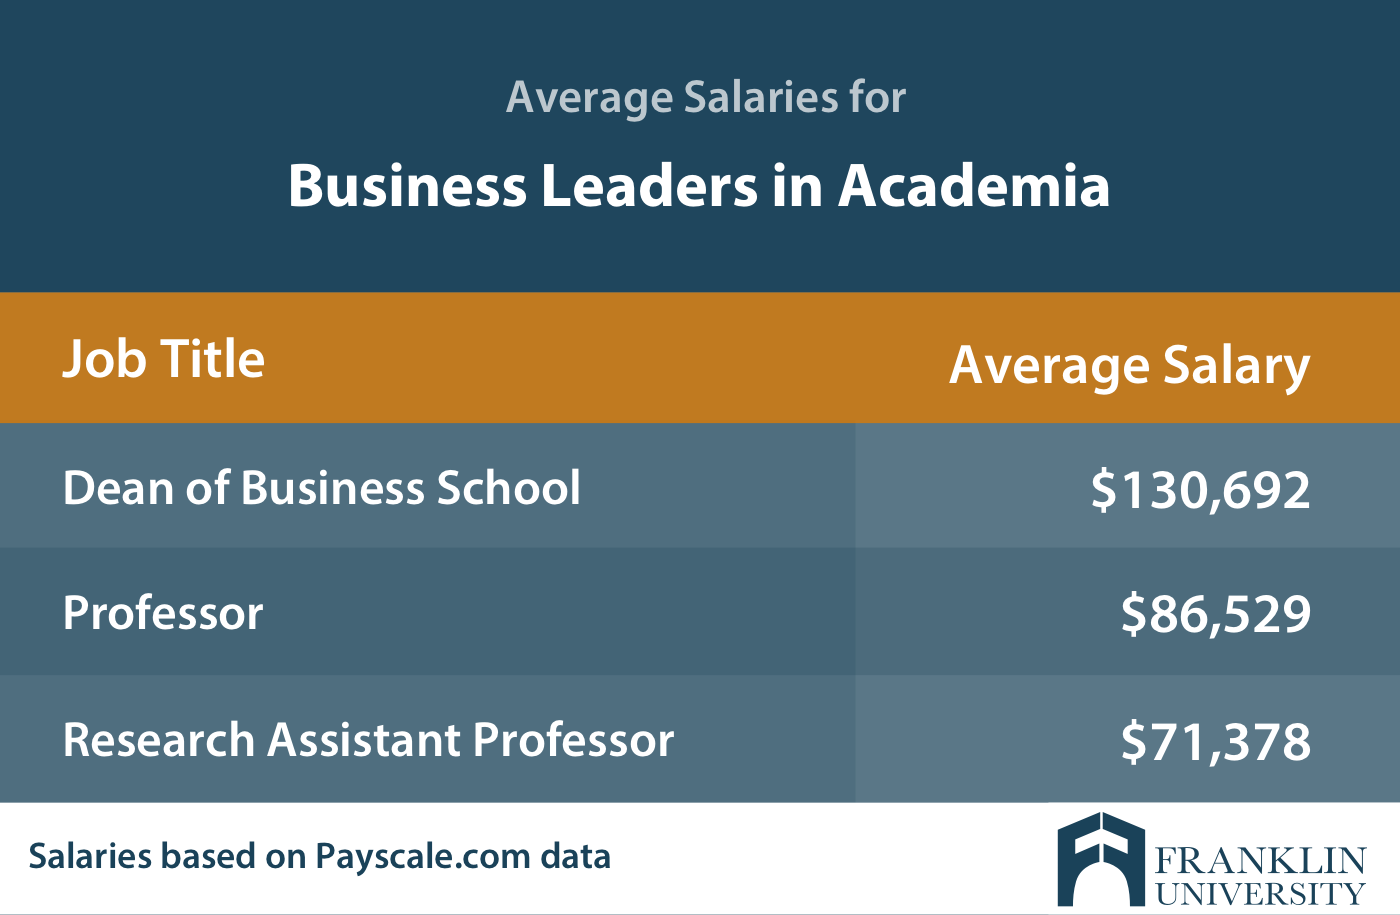 graphic describing the average salaries for business leaders in academia